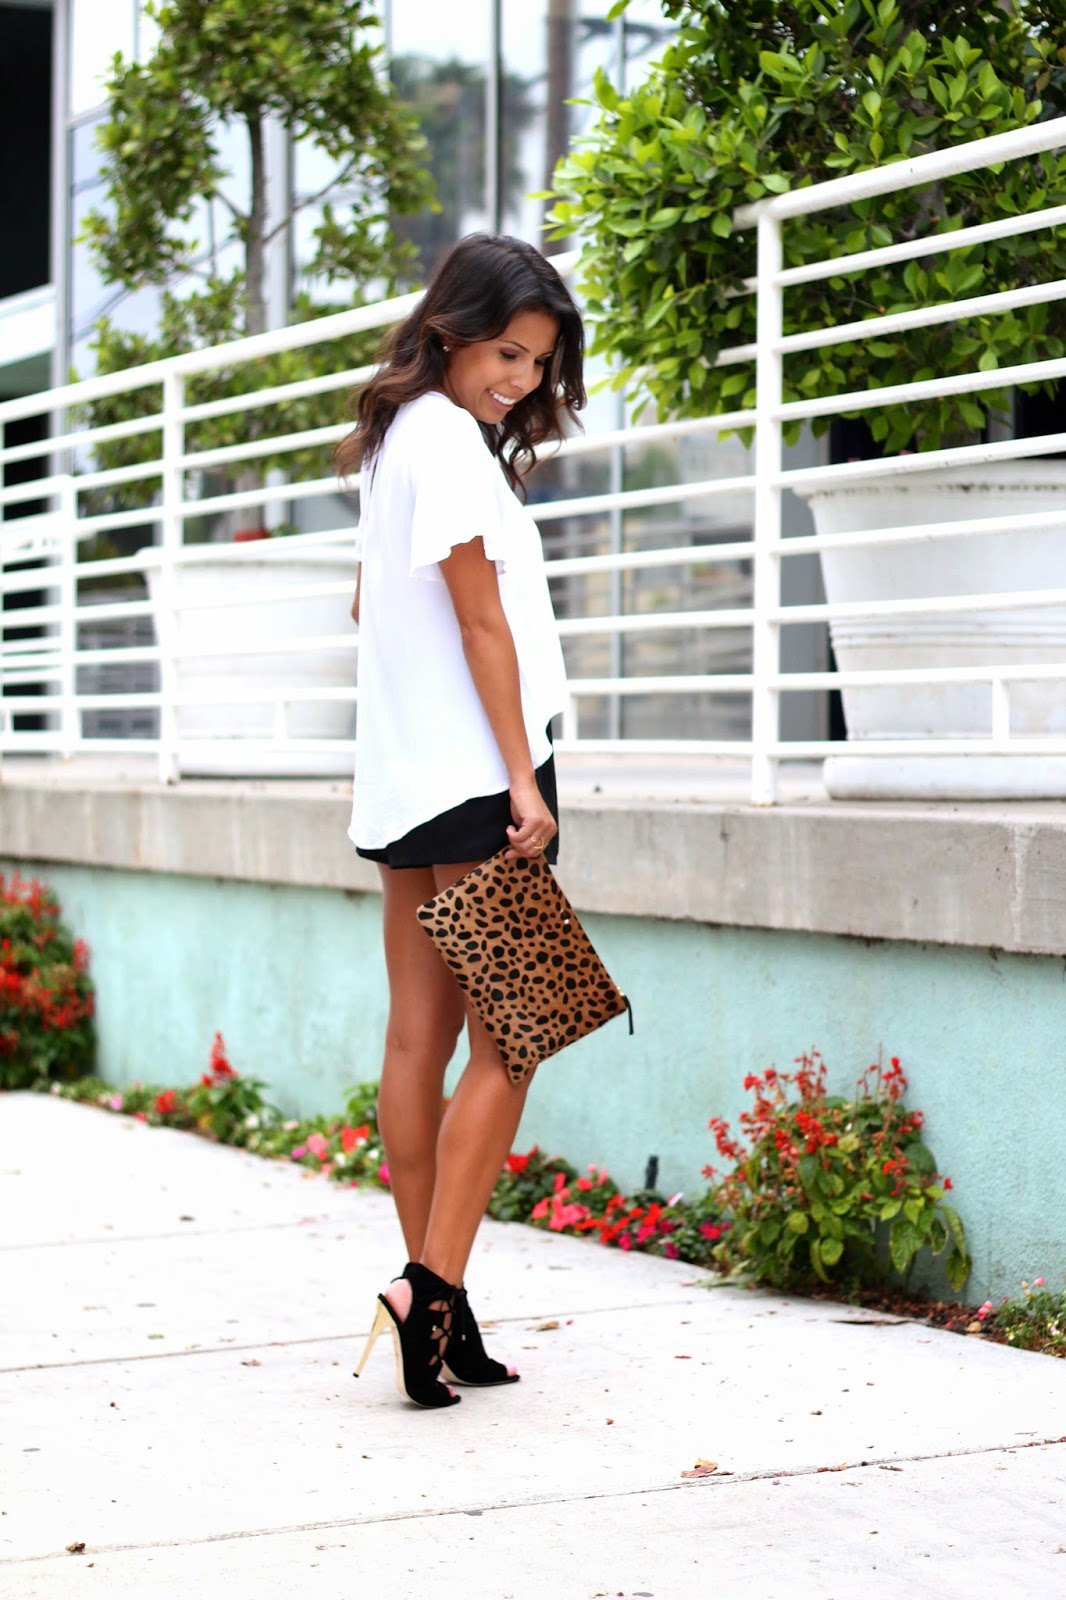 sam edelman lace up sandals, how to wear heels and shorts, white black outfit